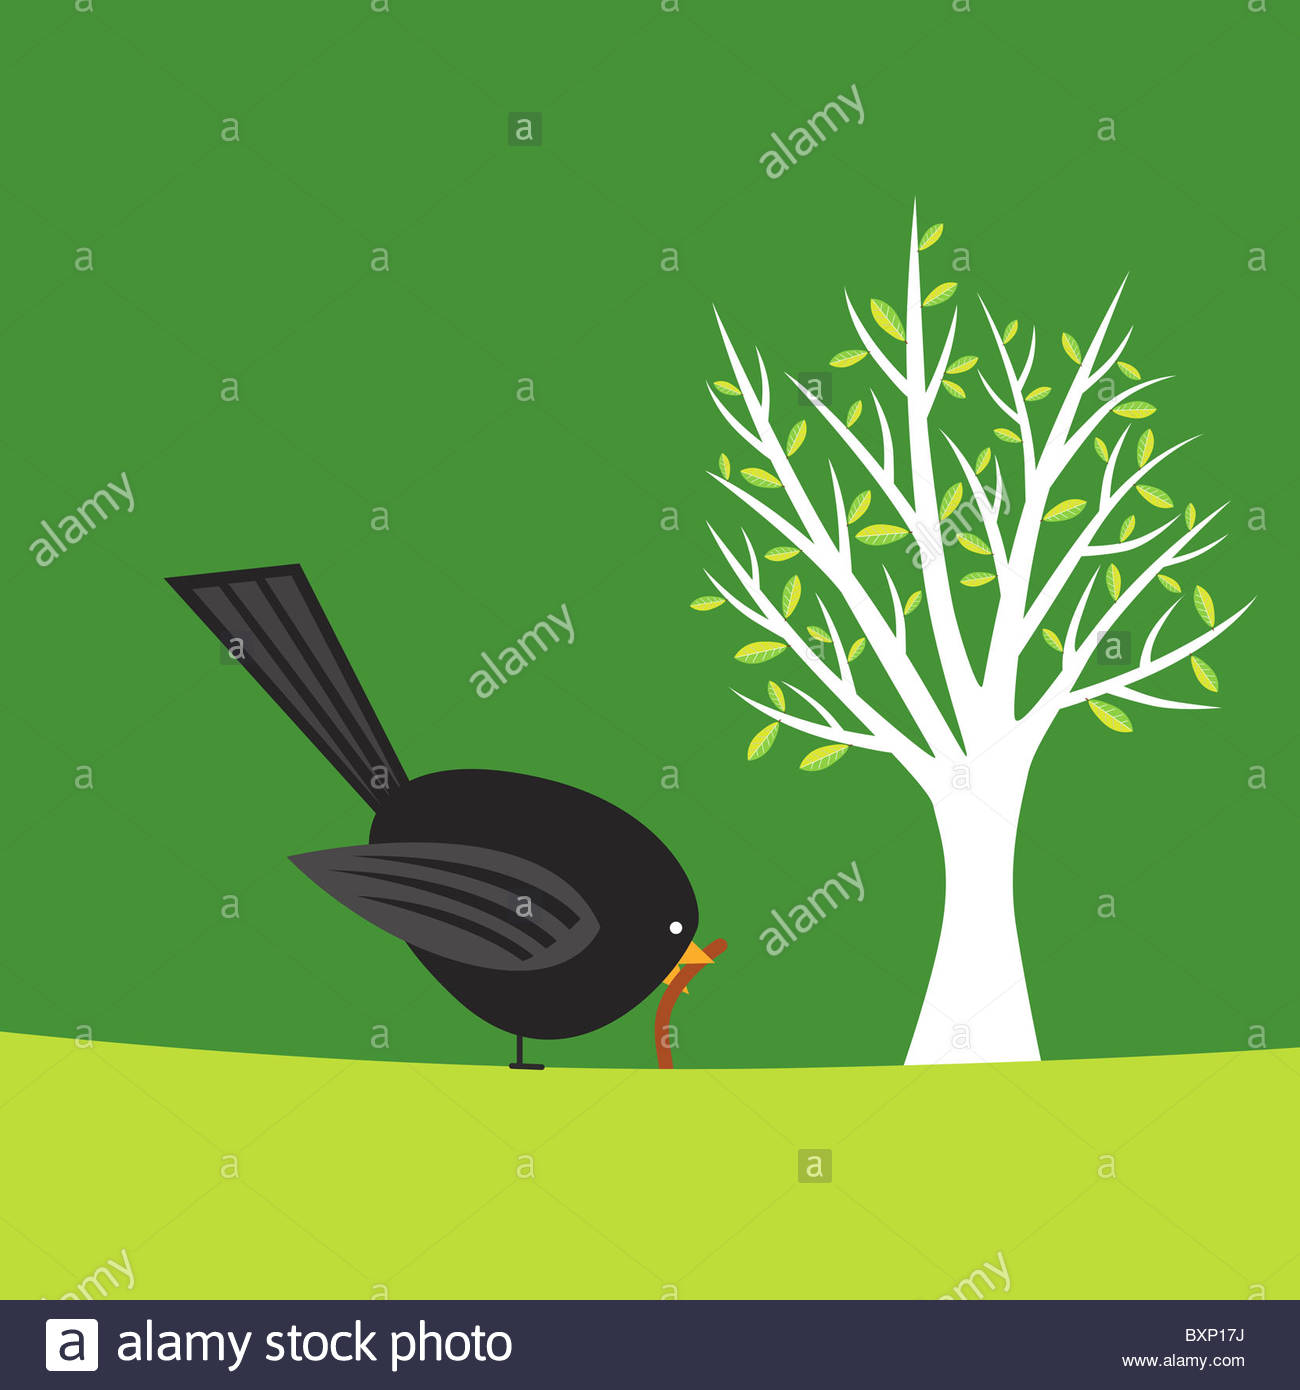 Early bird catches the worm illustration - Stock Image